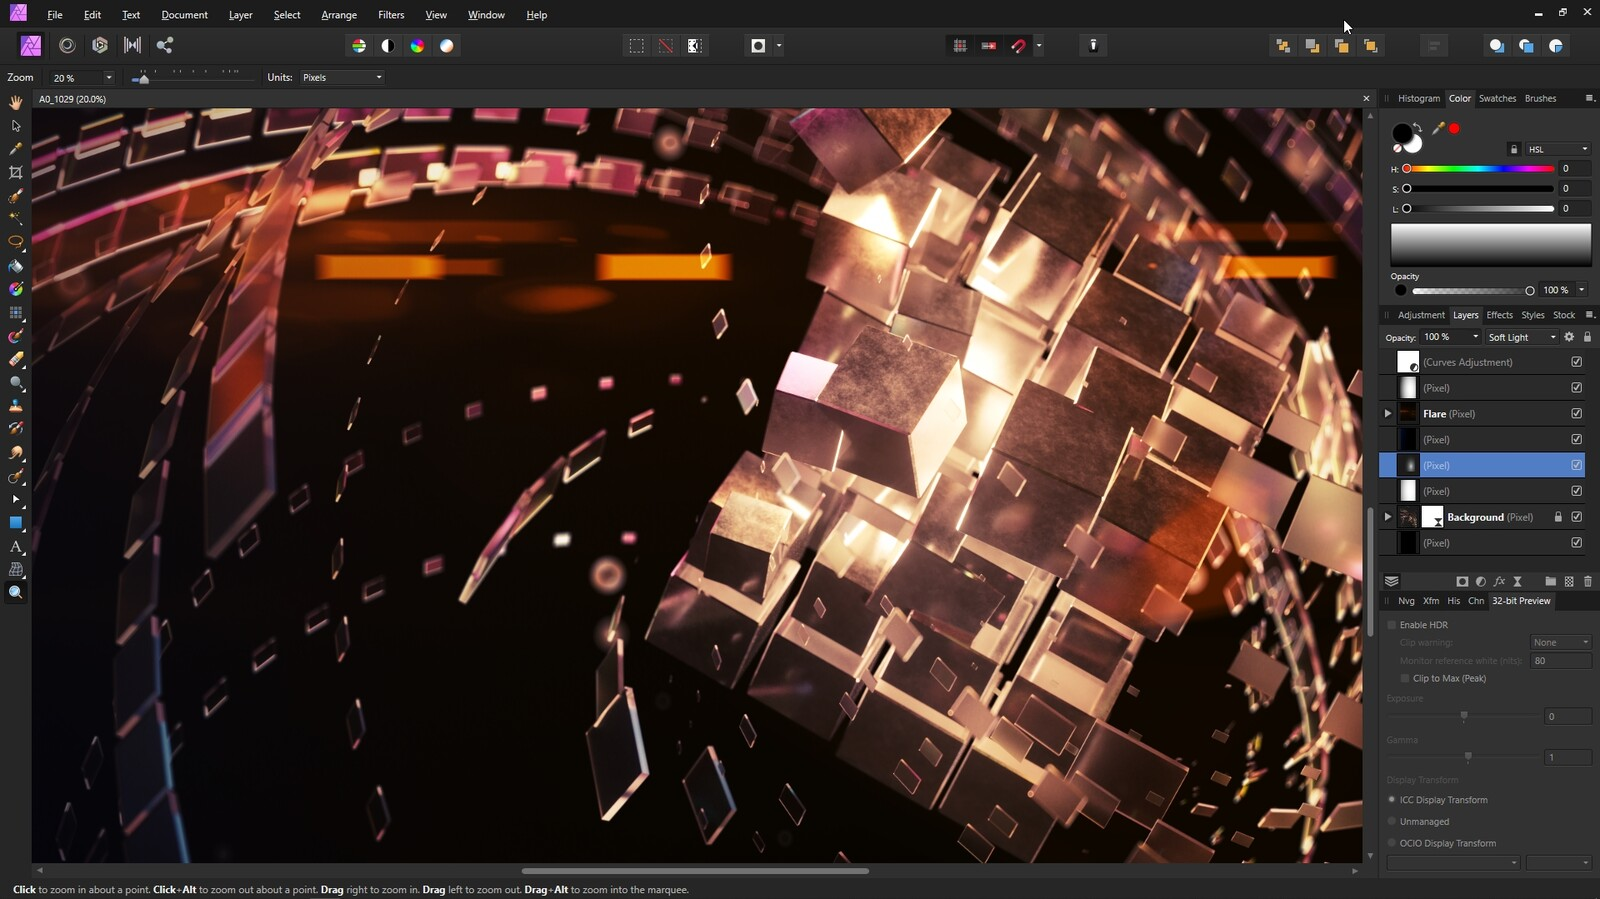 Editing in Affinity Photo